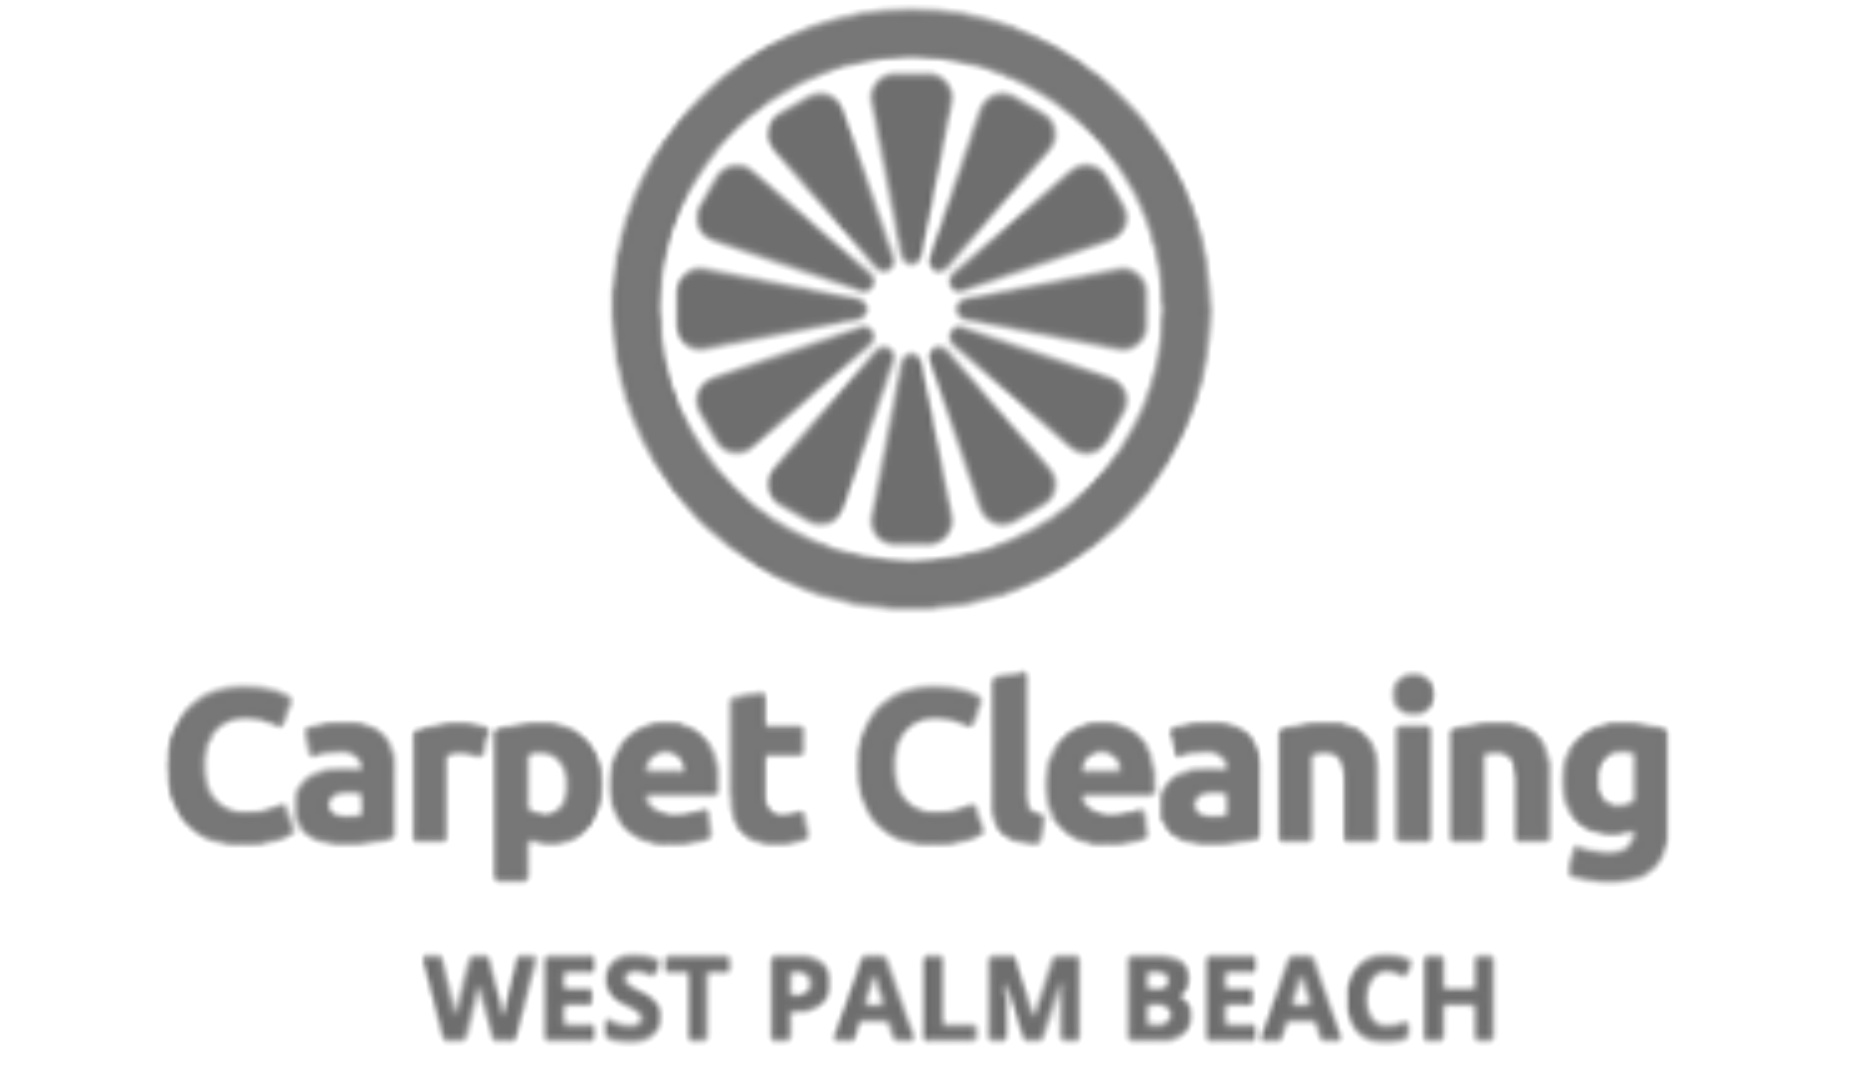 carpet cleaning website design seo west palm beach